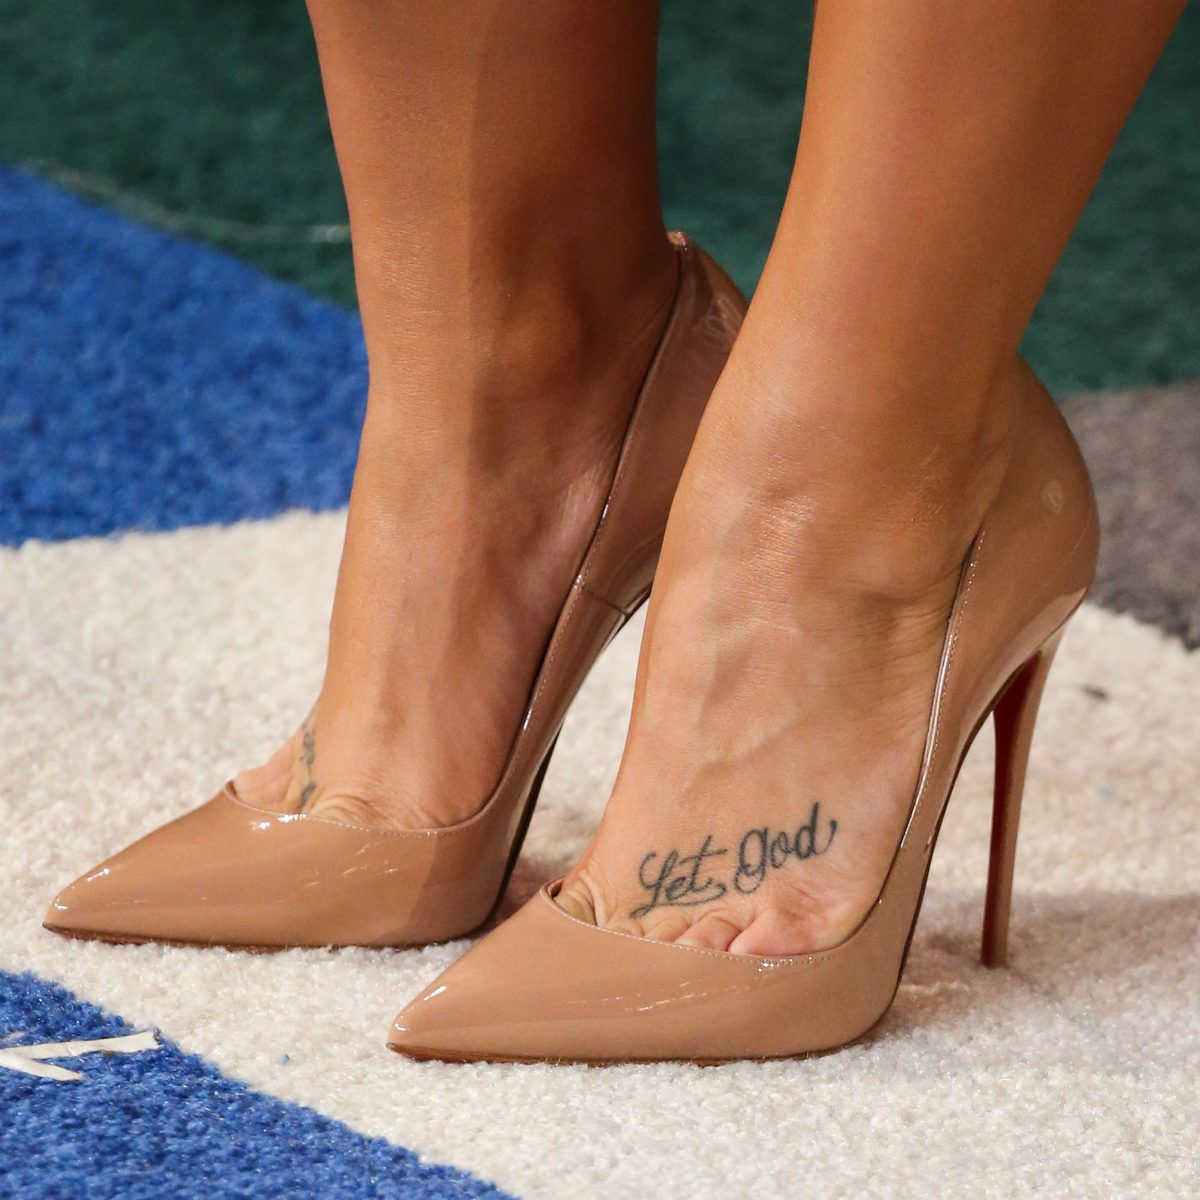 Variant remarkable, Demi lovato nude feet right!